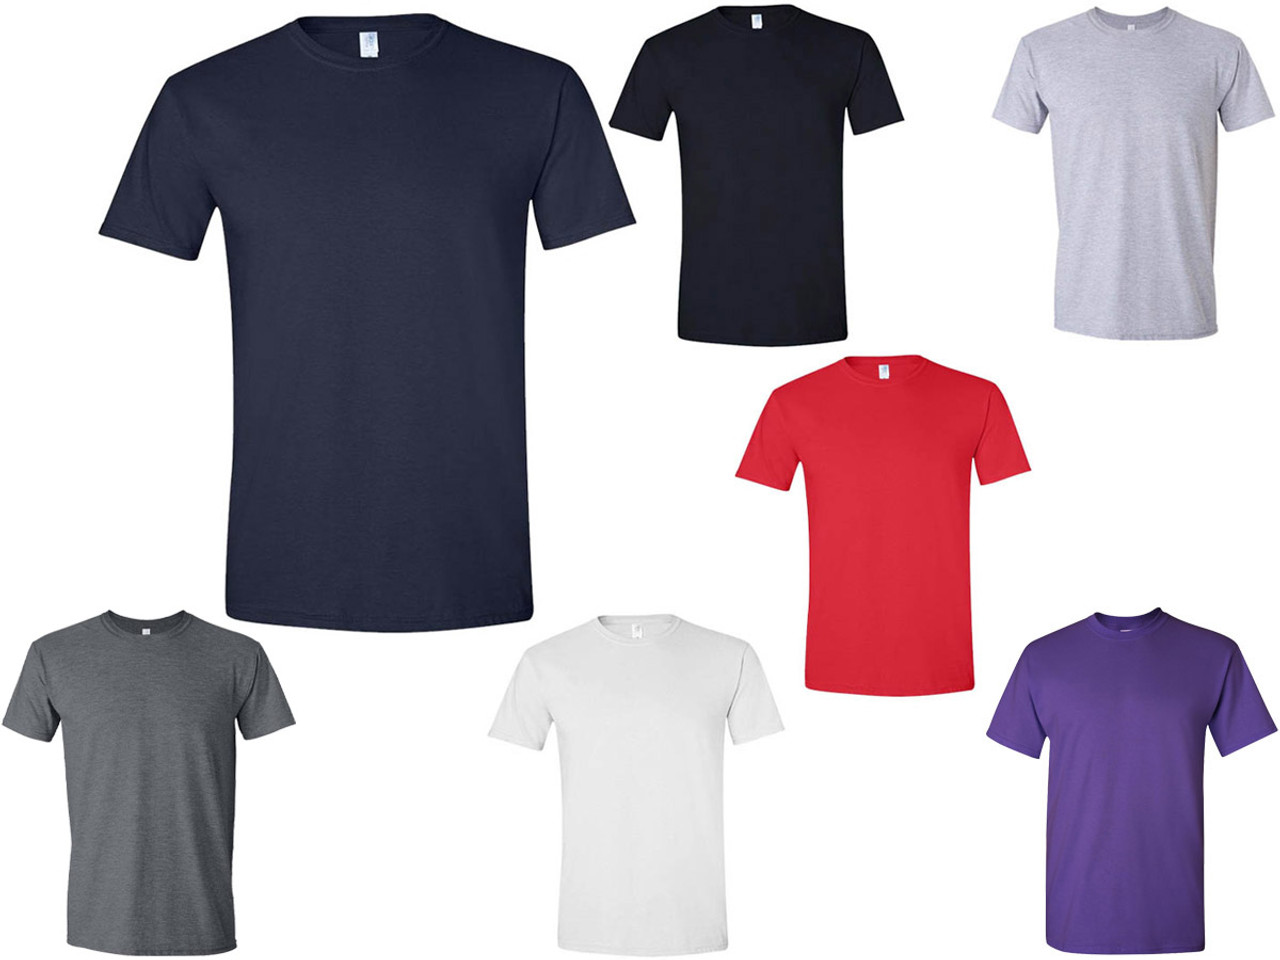 huge selection of high quality guarantee stylish design T‑Shirts Gildan 4.5 oz Soft Style Cotton G64000 Adult Unisex (7 Colors) -  5064